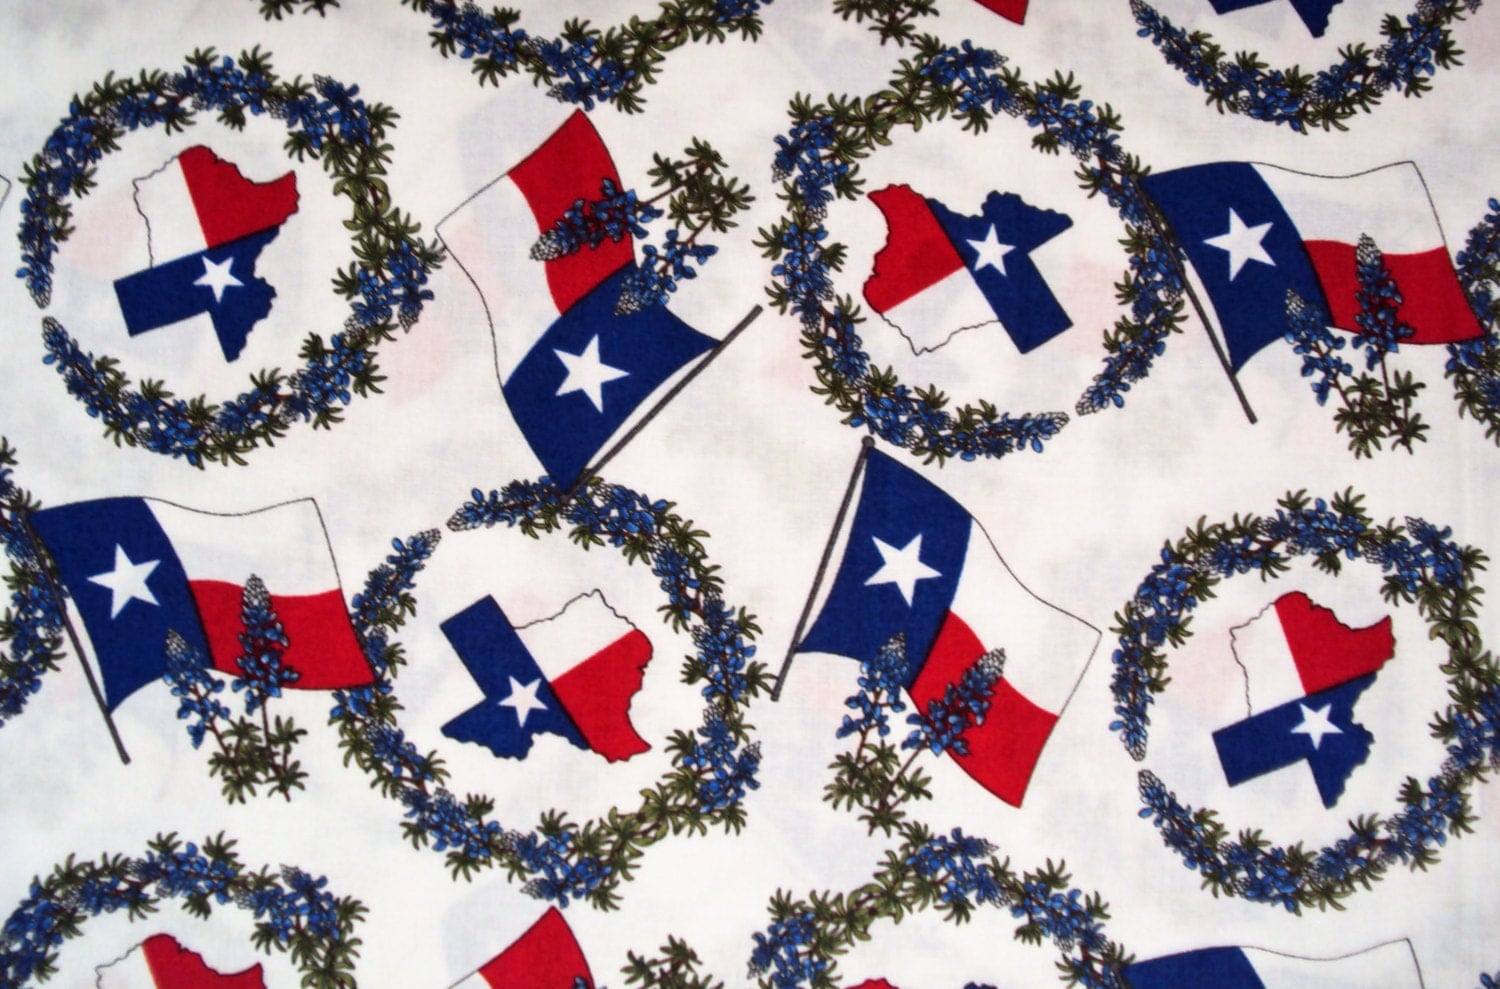 Bluebonnets Texas Moda Western Quilt Fabric Cowboys Horses Red